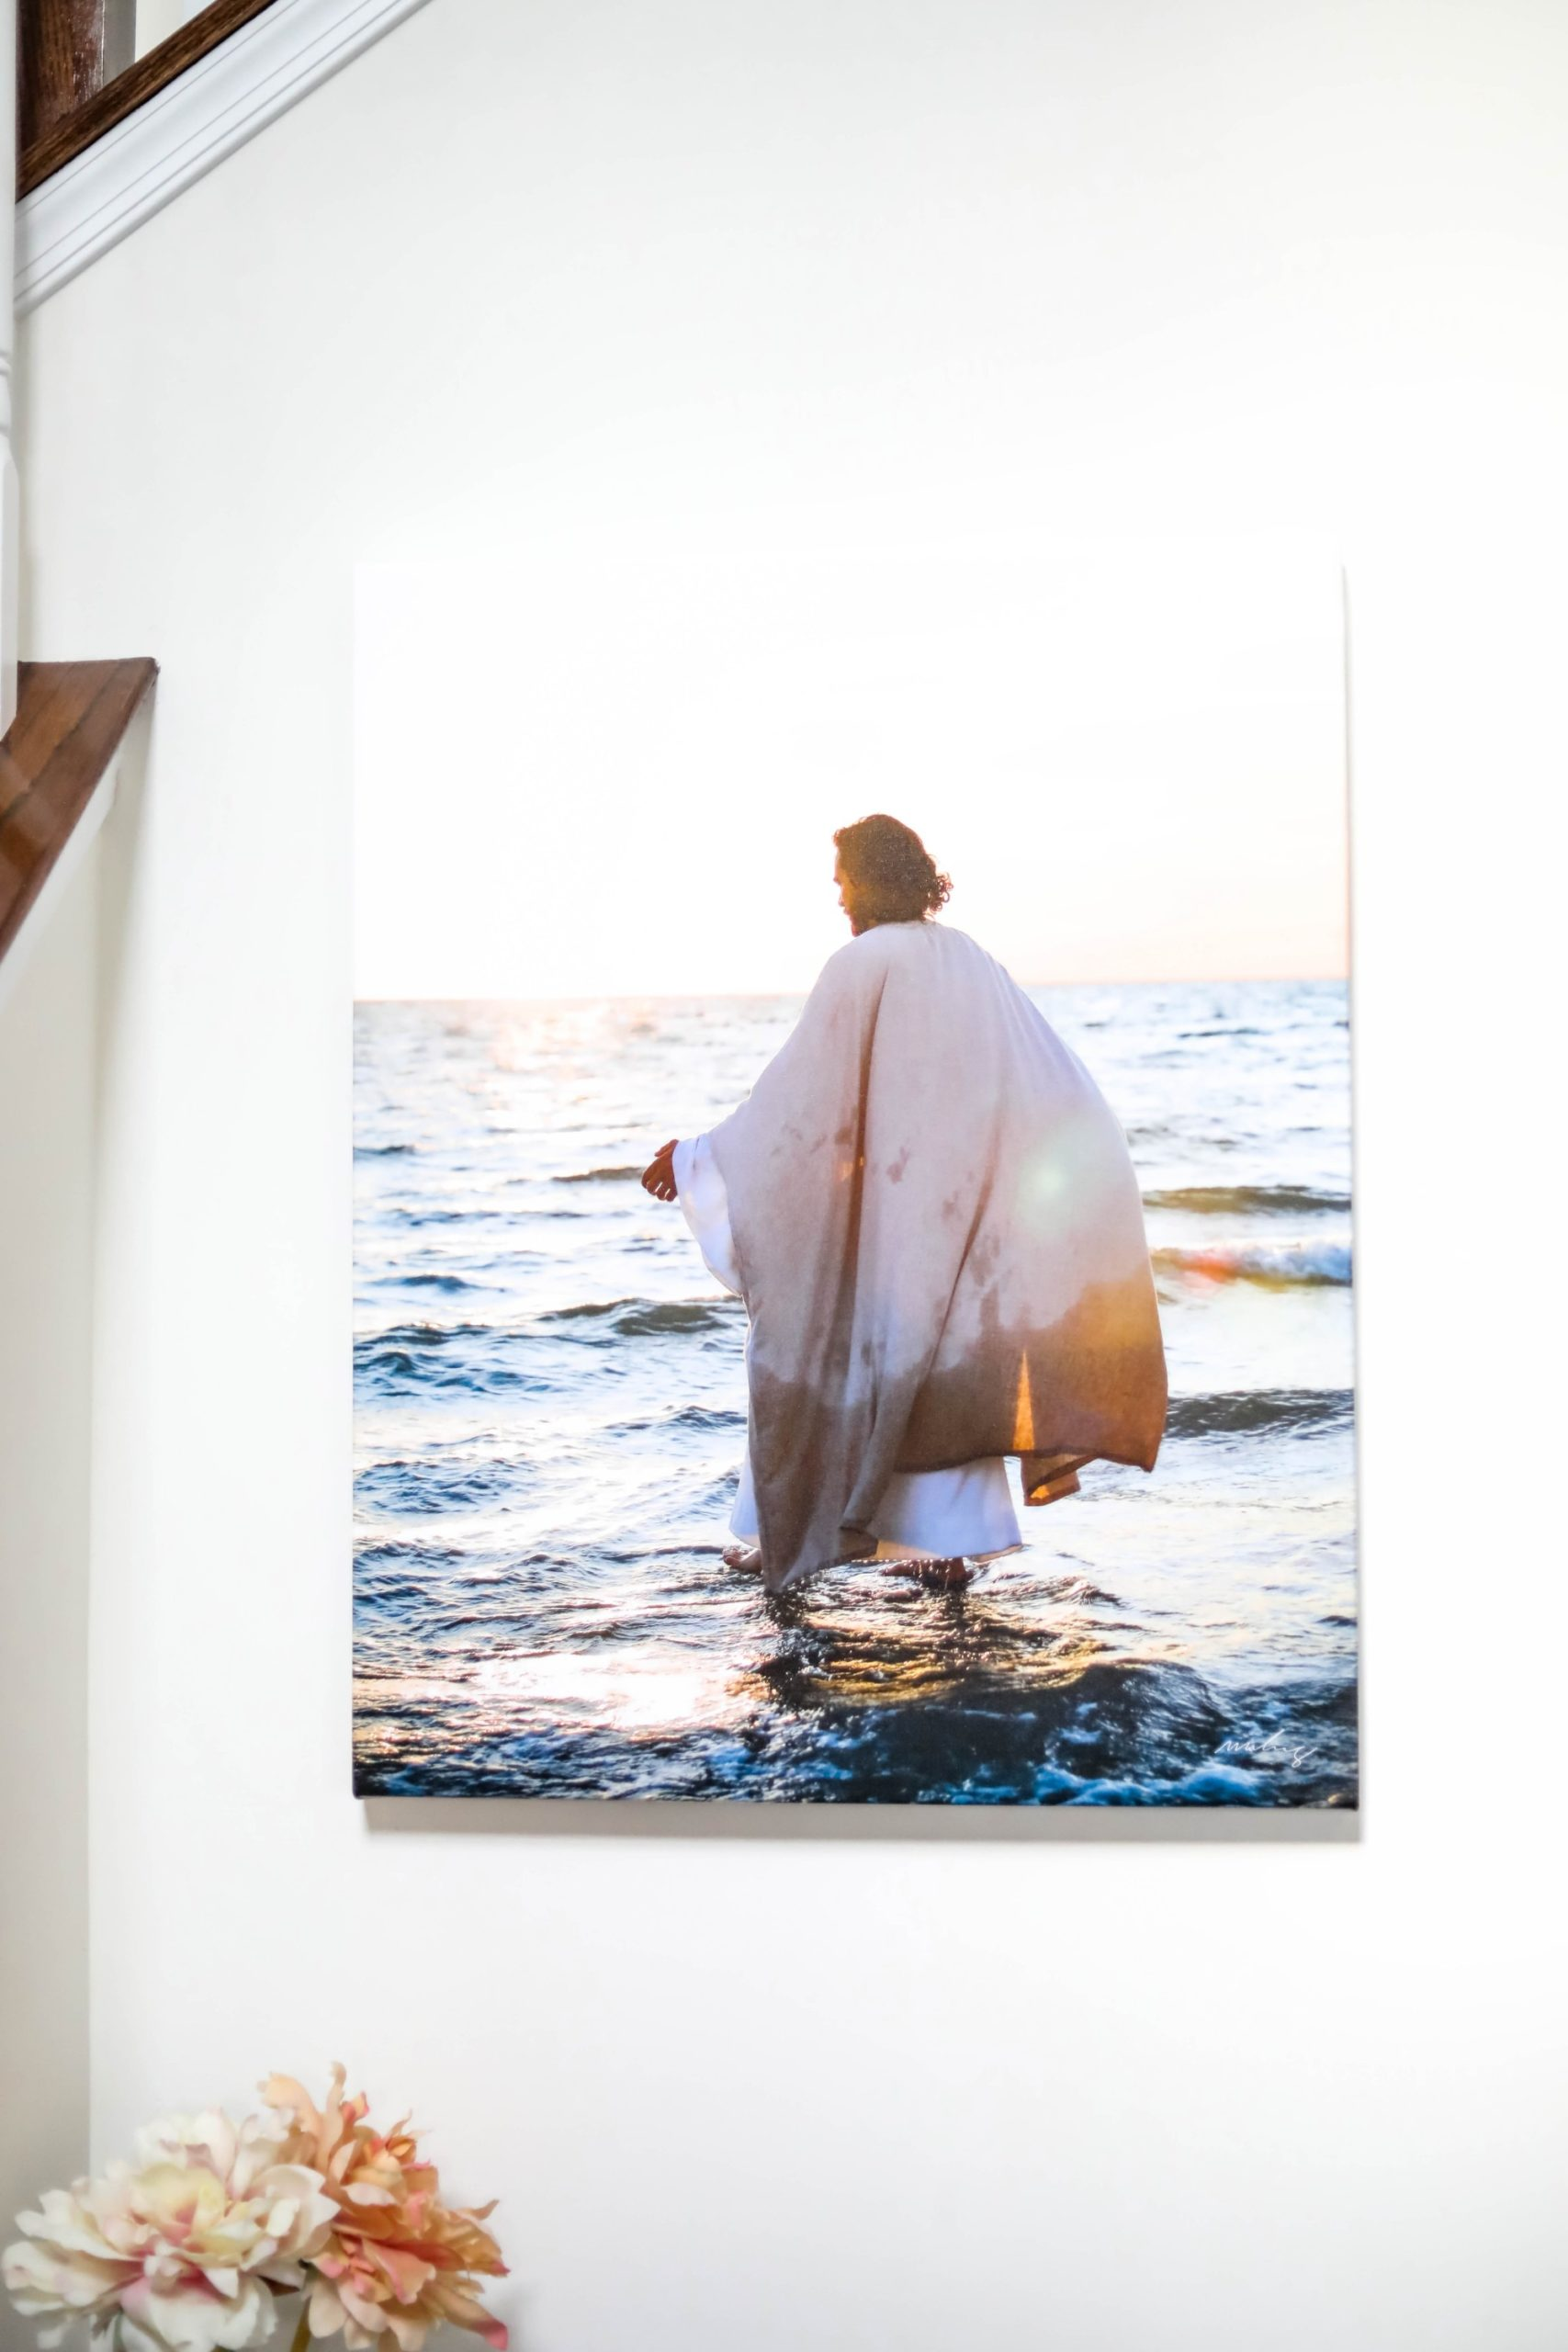 Reflections of Christ canvas - COOL SH*T I LOVELOVELOVE - Monthly Favorites, June 2020 on Coming Up Roses!